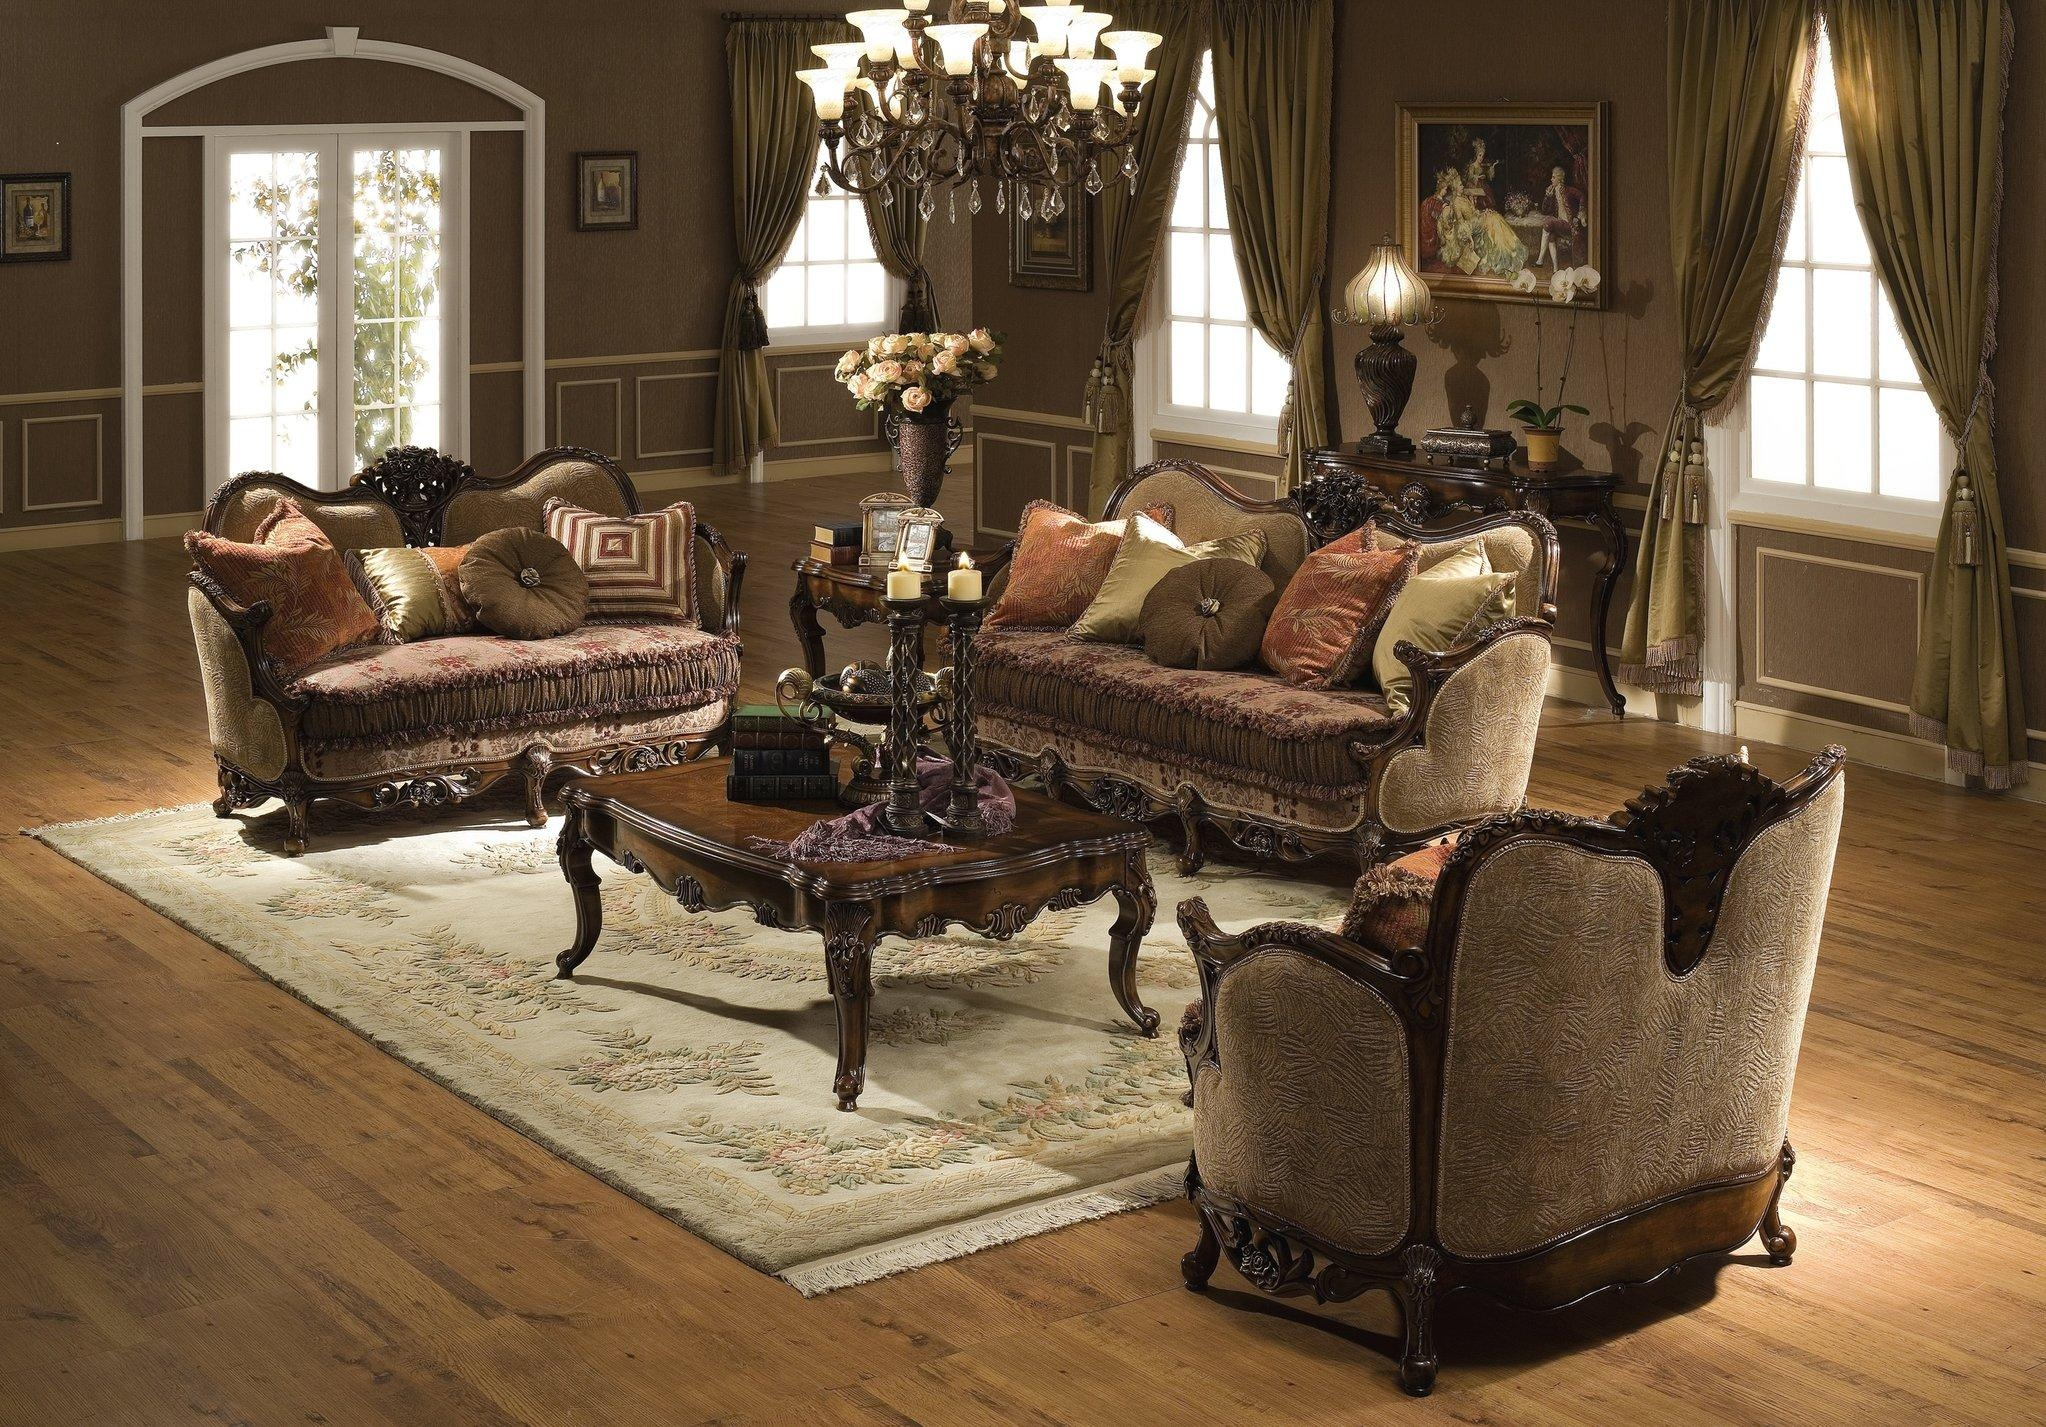 Astonishing Traditional Sectional Sofas Living Room Furniture 62 With Regard To Bradley Sectional Sofas (Image 3 of 20)